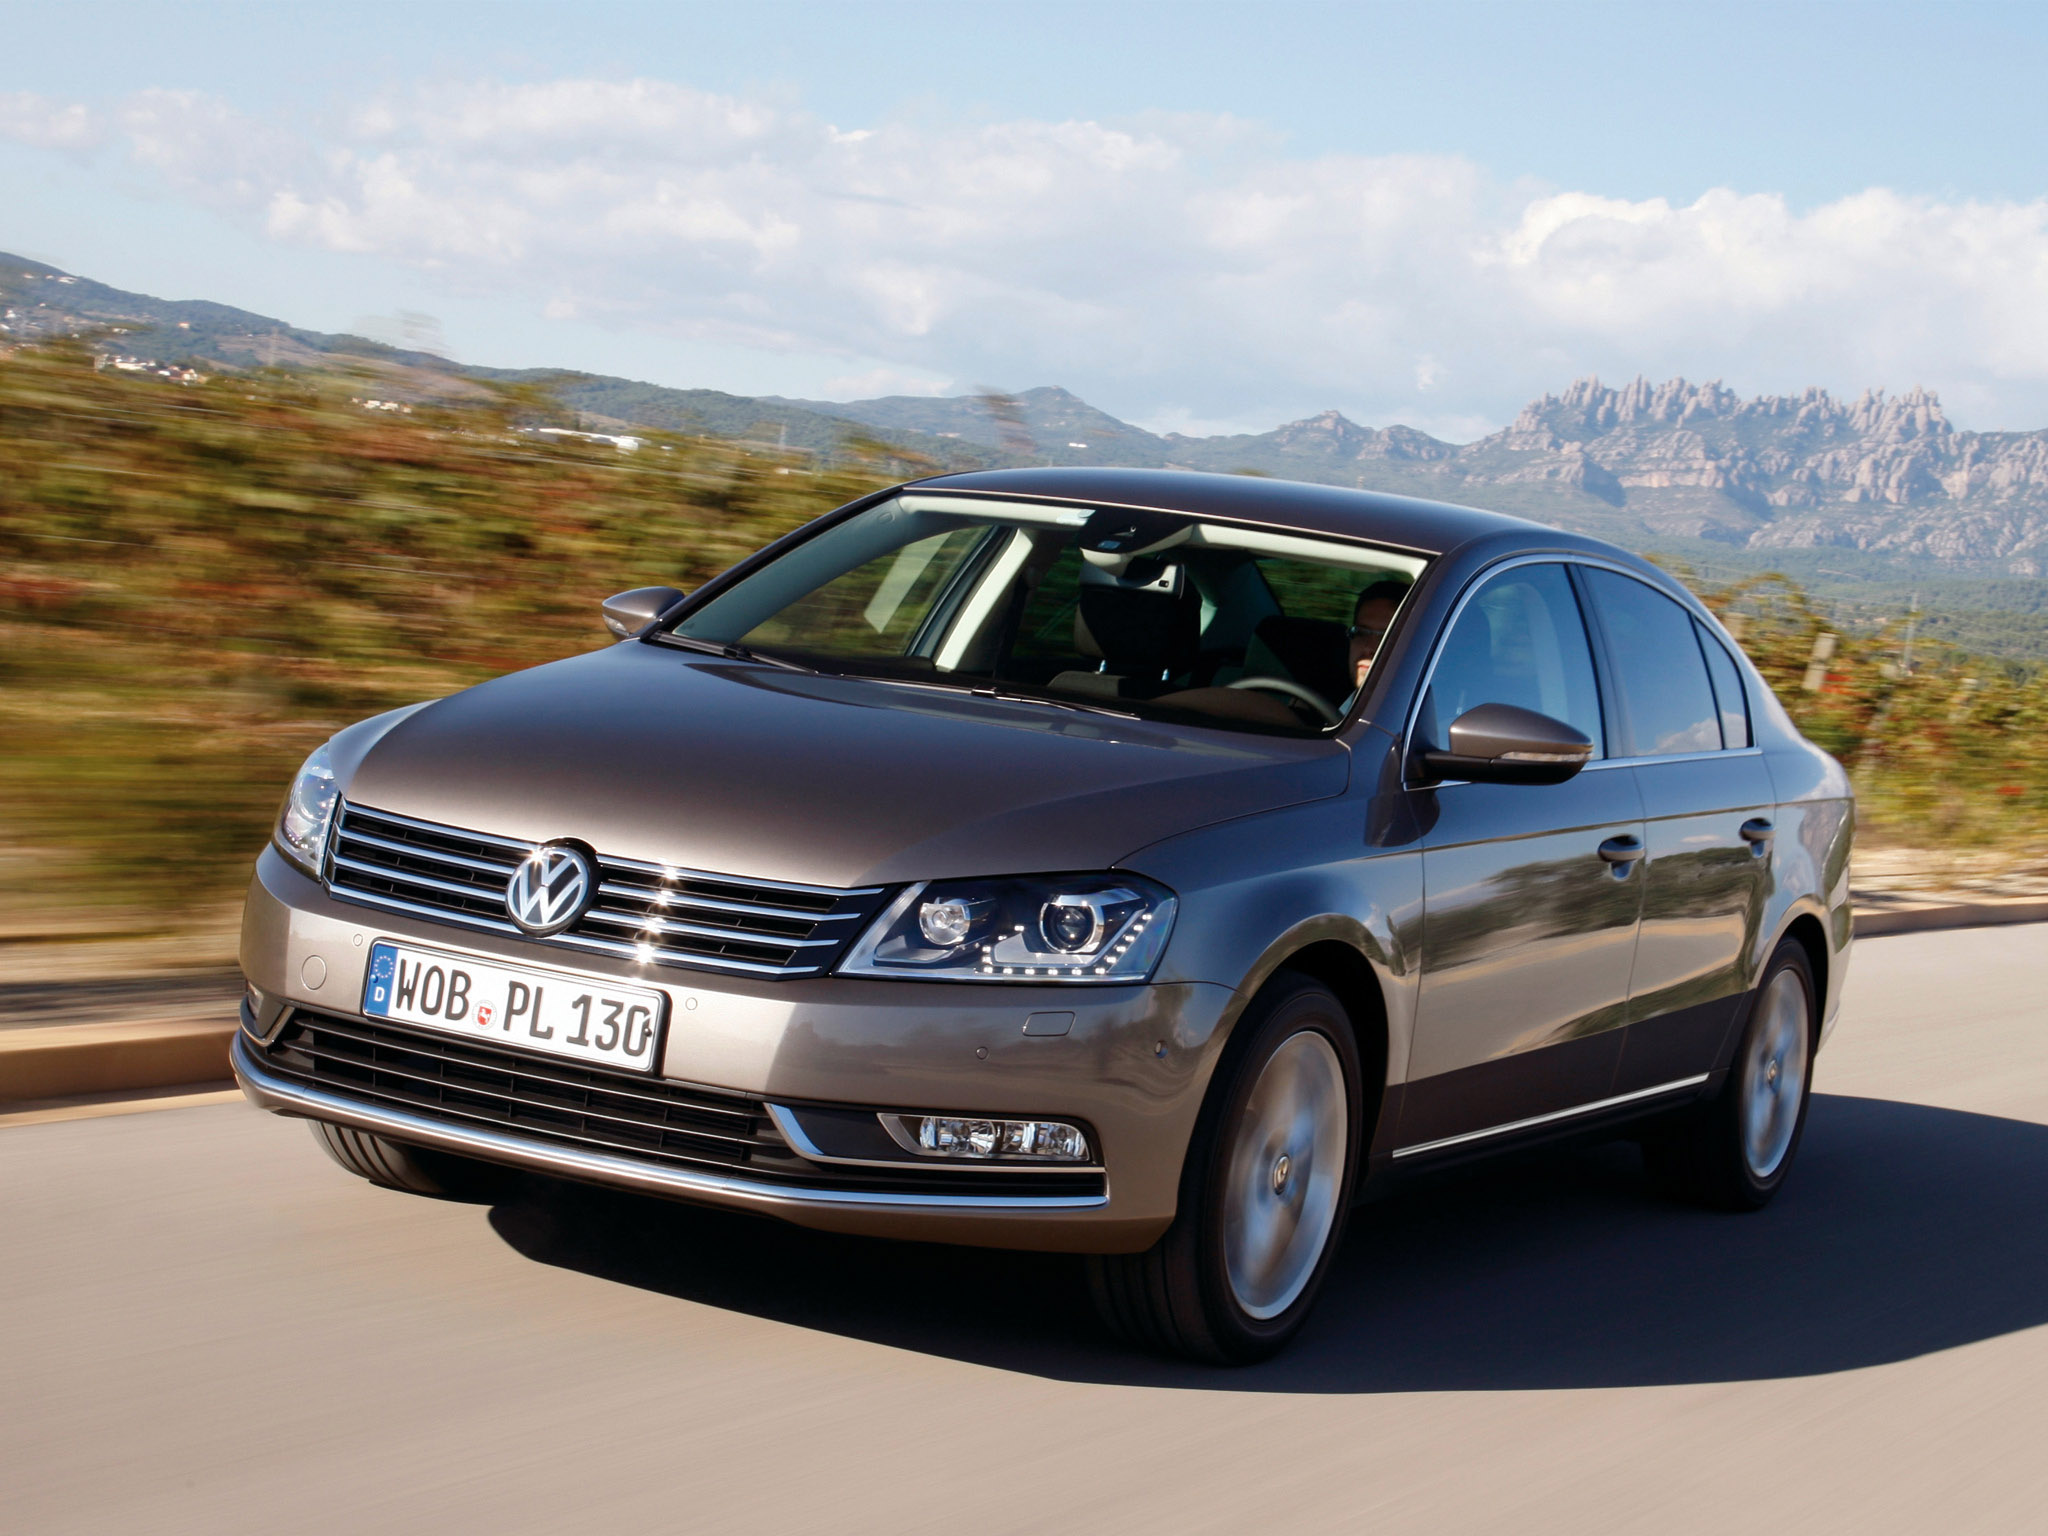 Volkswagen Passat 1.4 2010 photo - 1